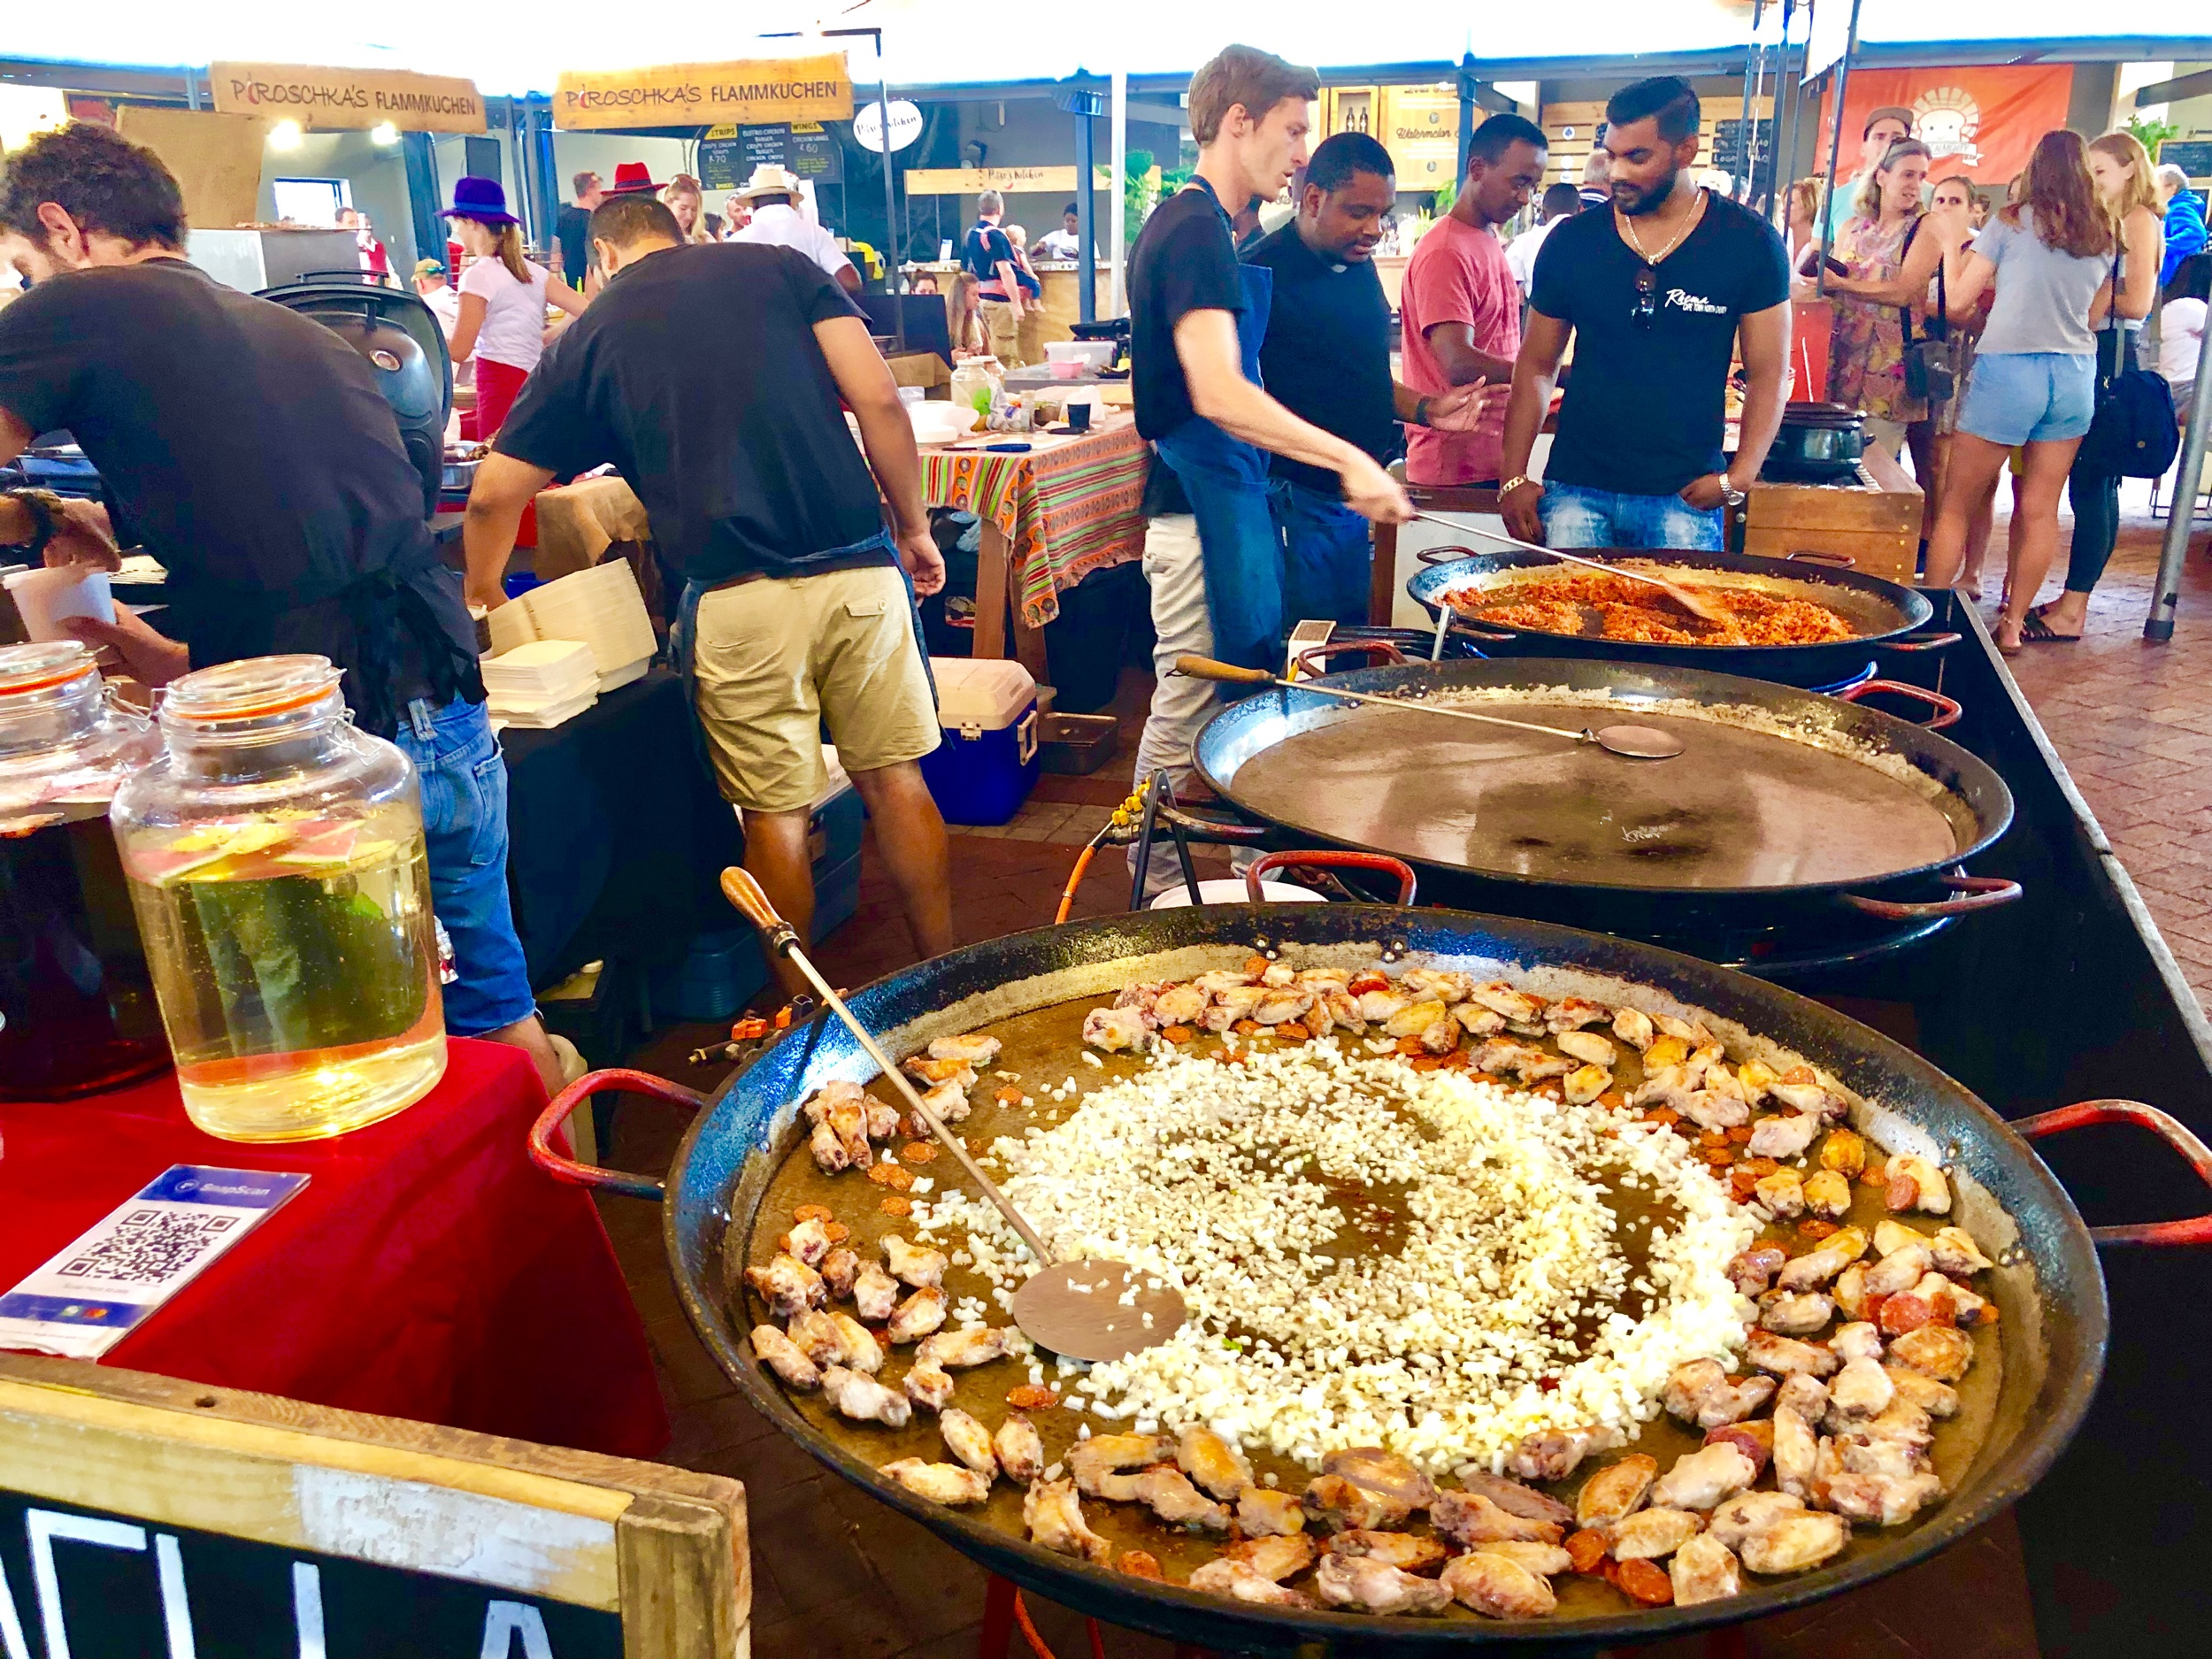 Paella at the Neighborgoods Market, Cape Town South Africa